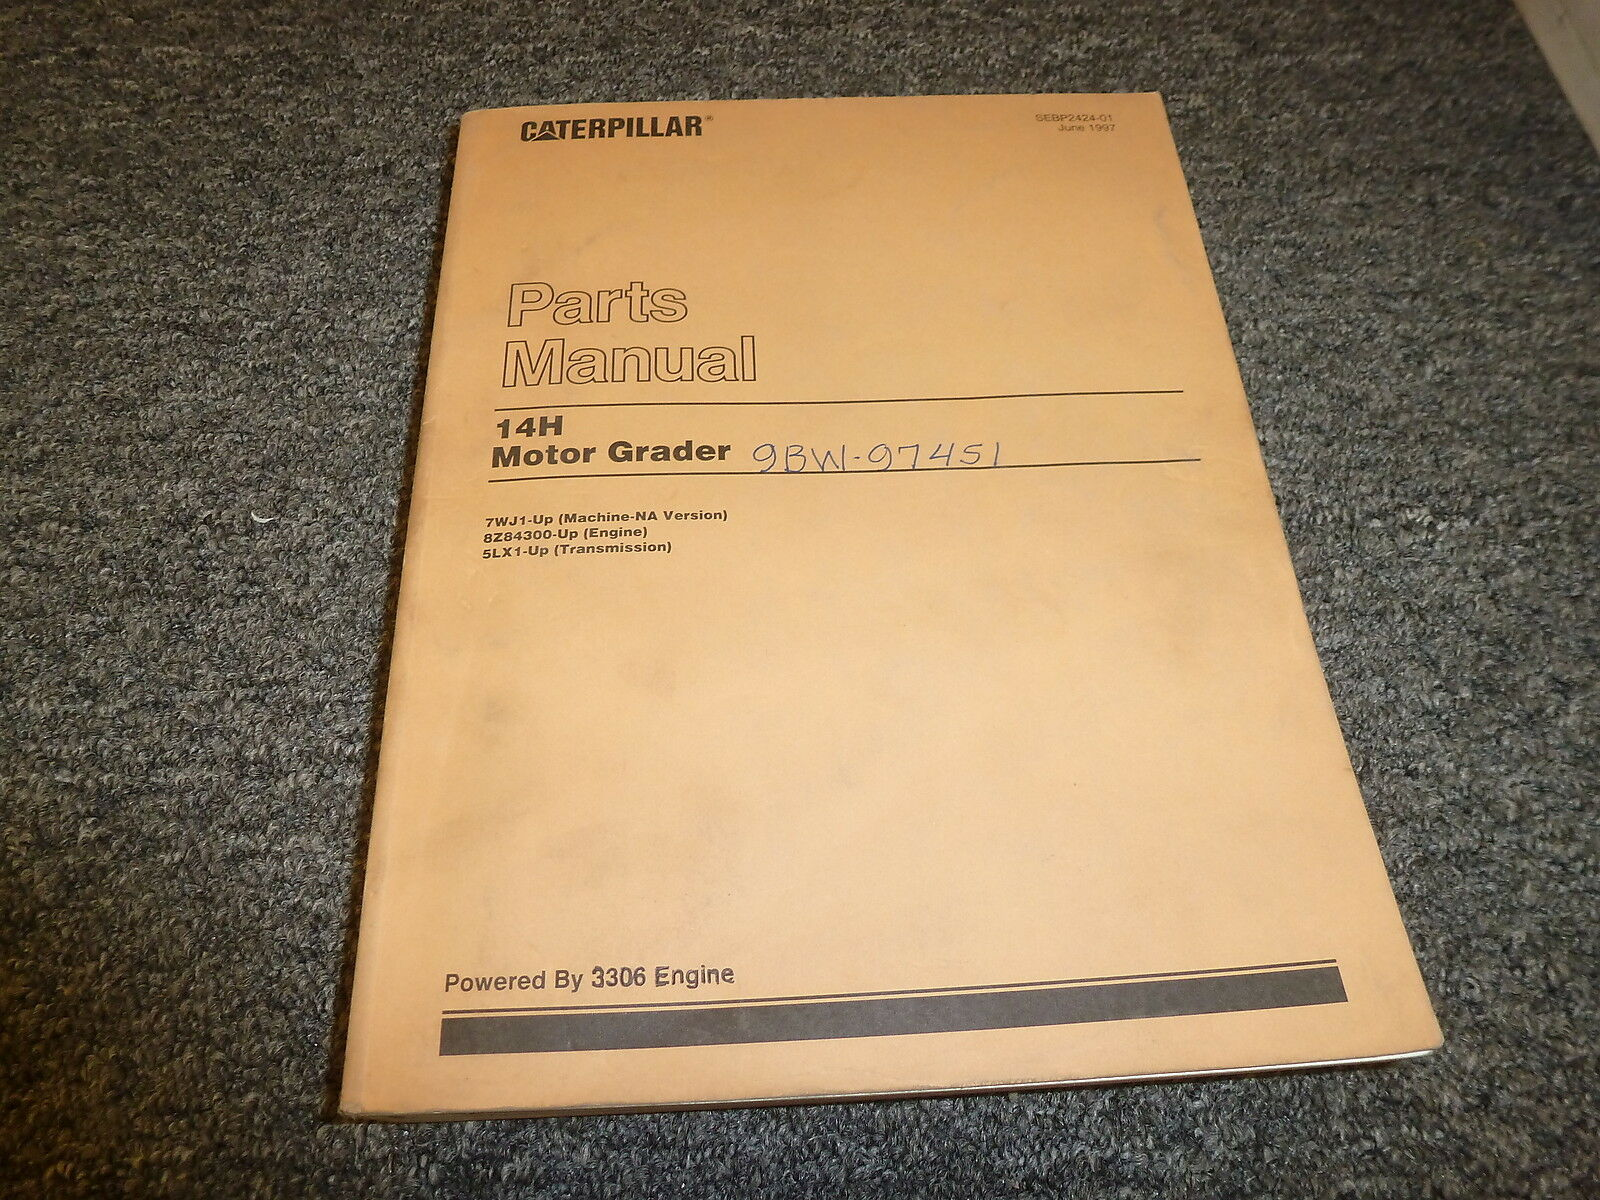 Caterpillar Cat 14H Motor Grader w/ 3306 Engine Parts Catalog Manual  7WJ1-Up 1 of 1Only 1 available See More